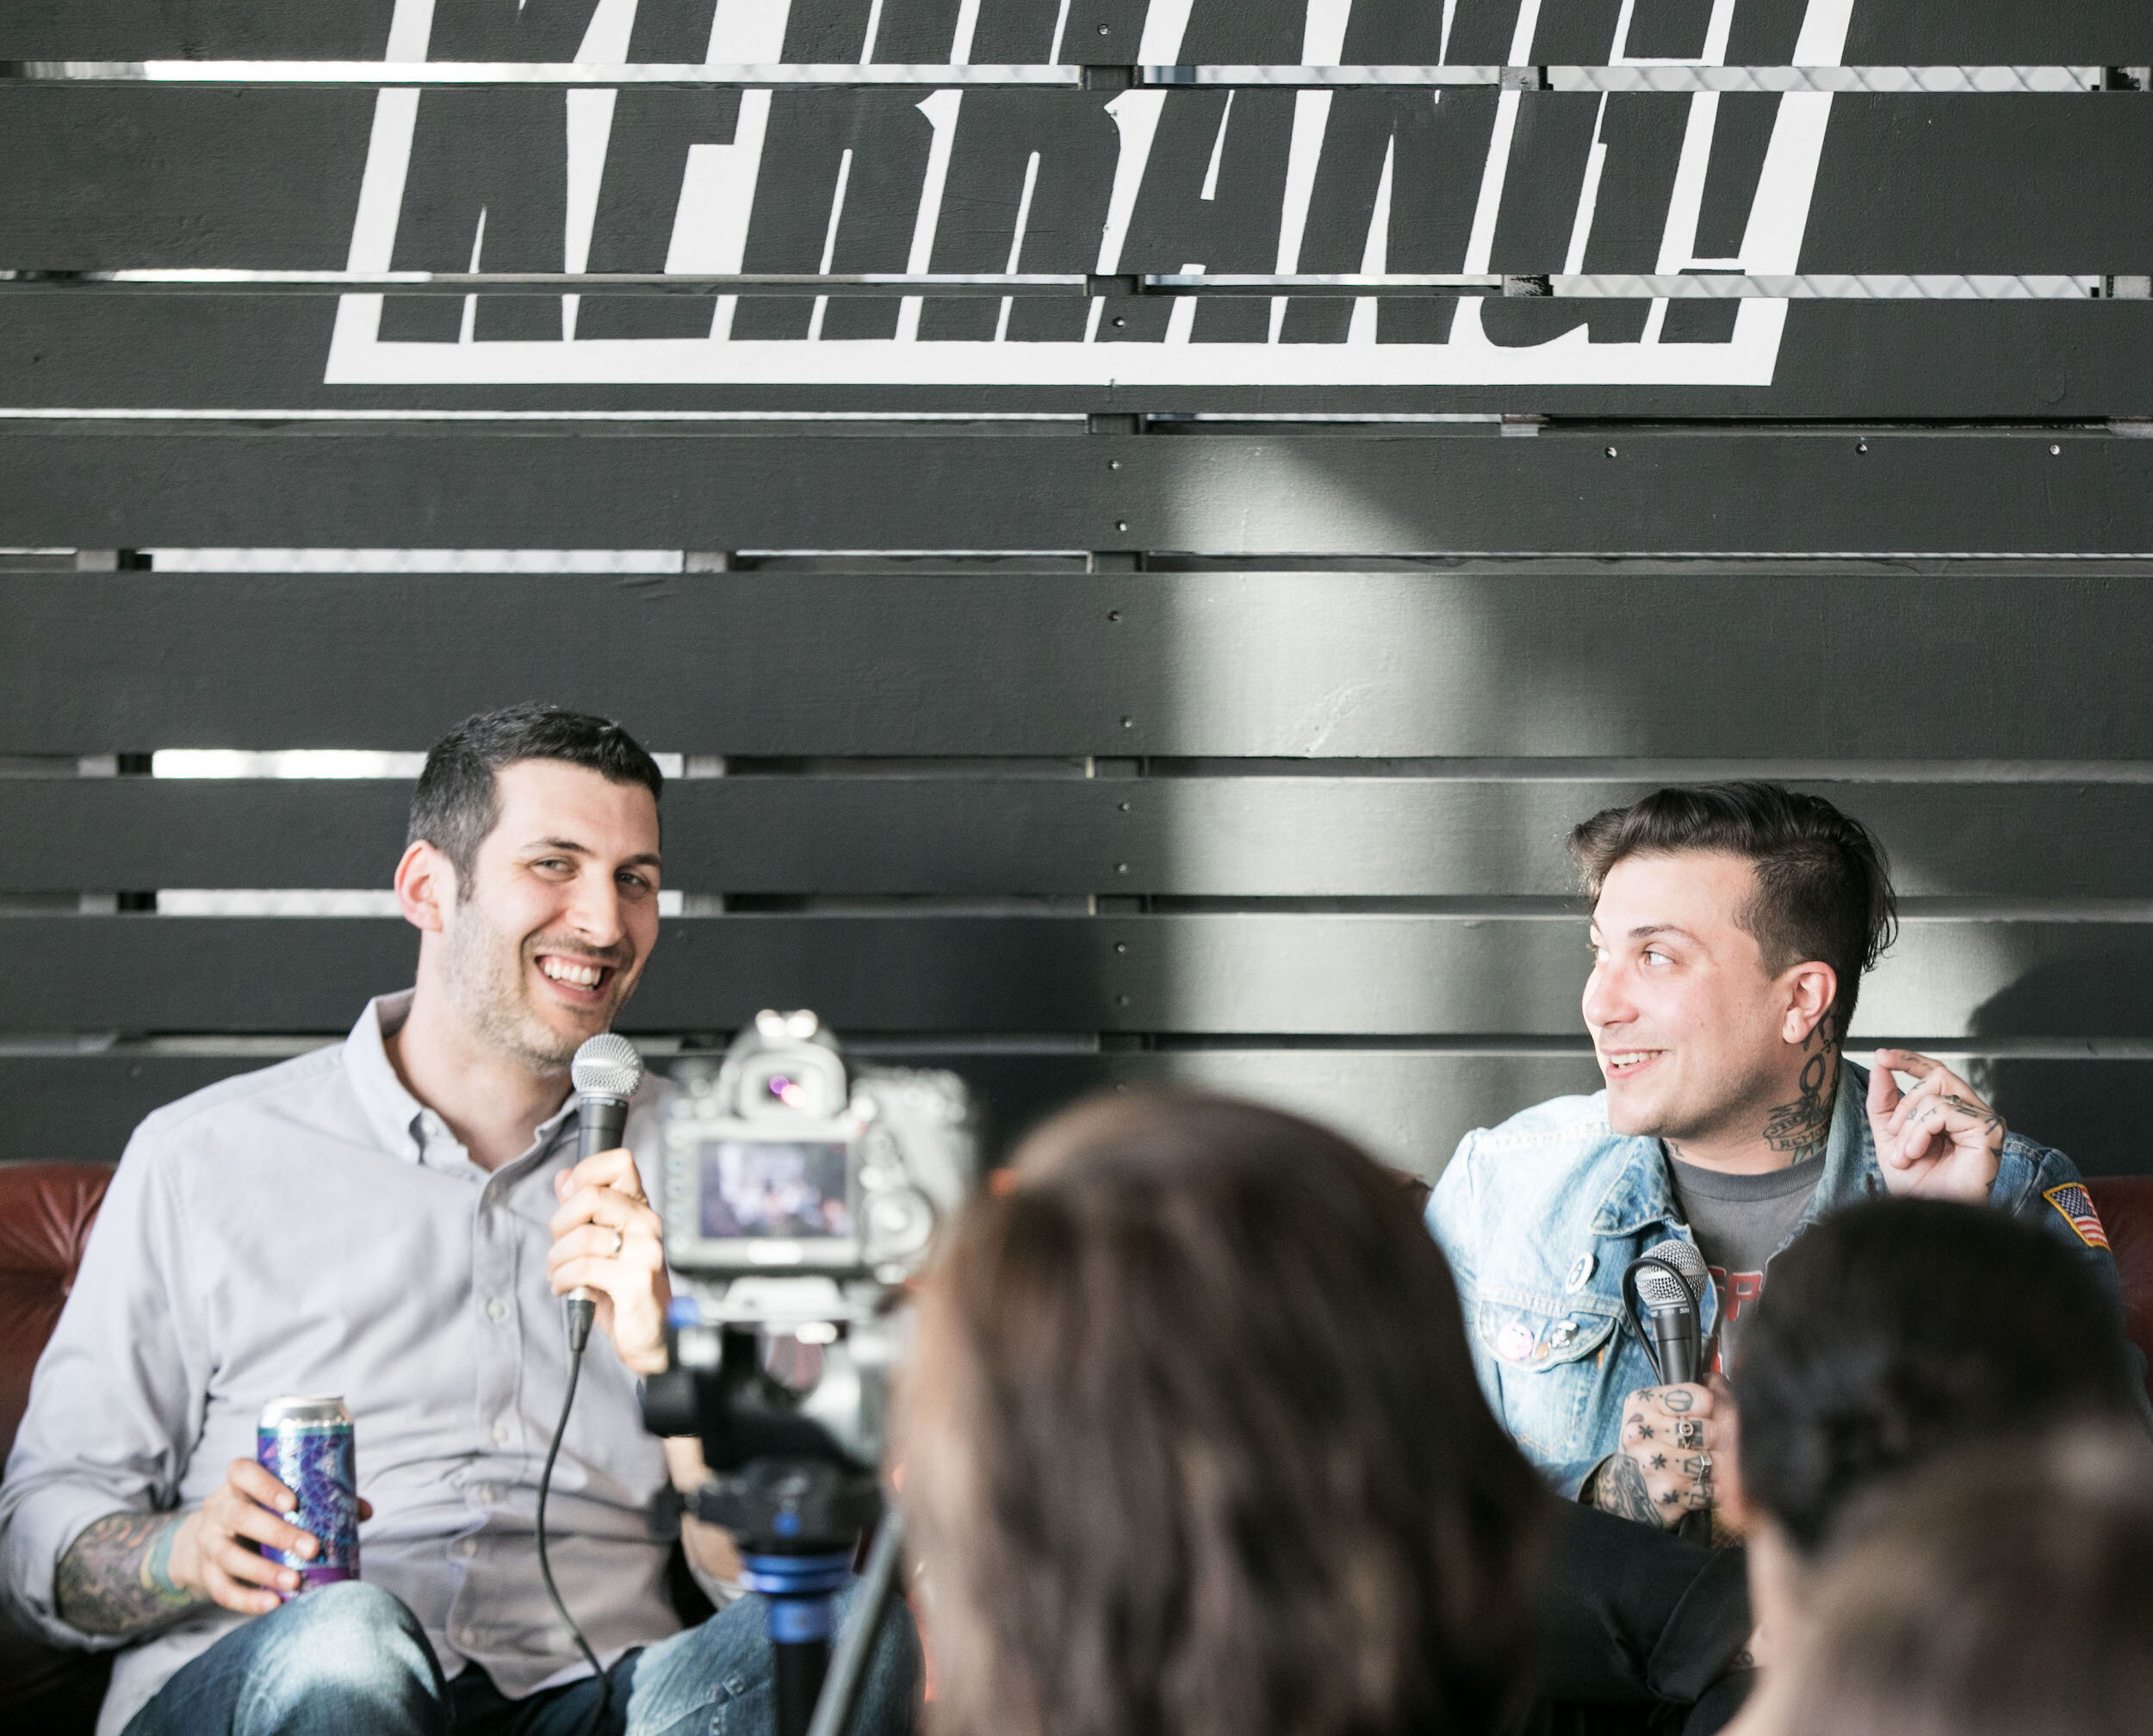 WORK EXPERIENCE - As U.S. Executive Director of Kerrang! — the premier UK-based rock publication founded in 1981 — I oversee all creative and business ventures in the United States. Fueled by a passion for rock, punk, and heavy metal, I've applied my experiences in writing, editing, video production, management, and sales to develop a massive digital audience for the brand in America.Previously, I was Editor-In-Chief of The Beer Necessities (a digital publication founded by Anheuser-Busch), Beer Editor for About.com (now Dotdash), and Program Scheduling Coordinator for Comedy Central.